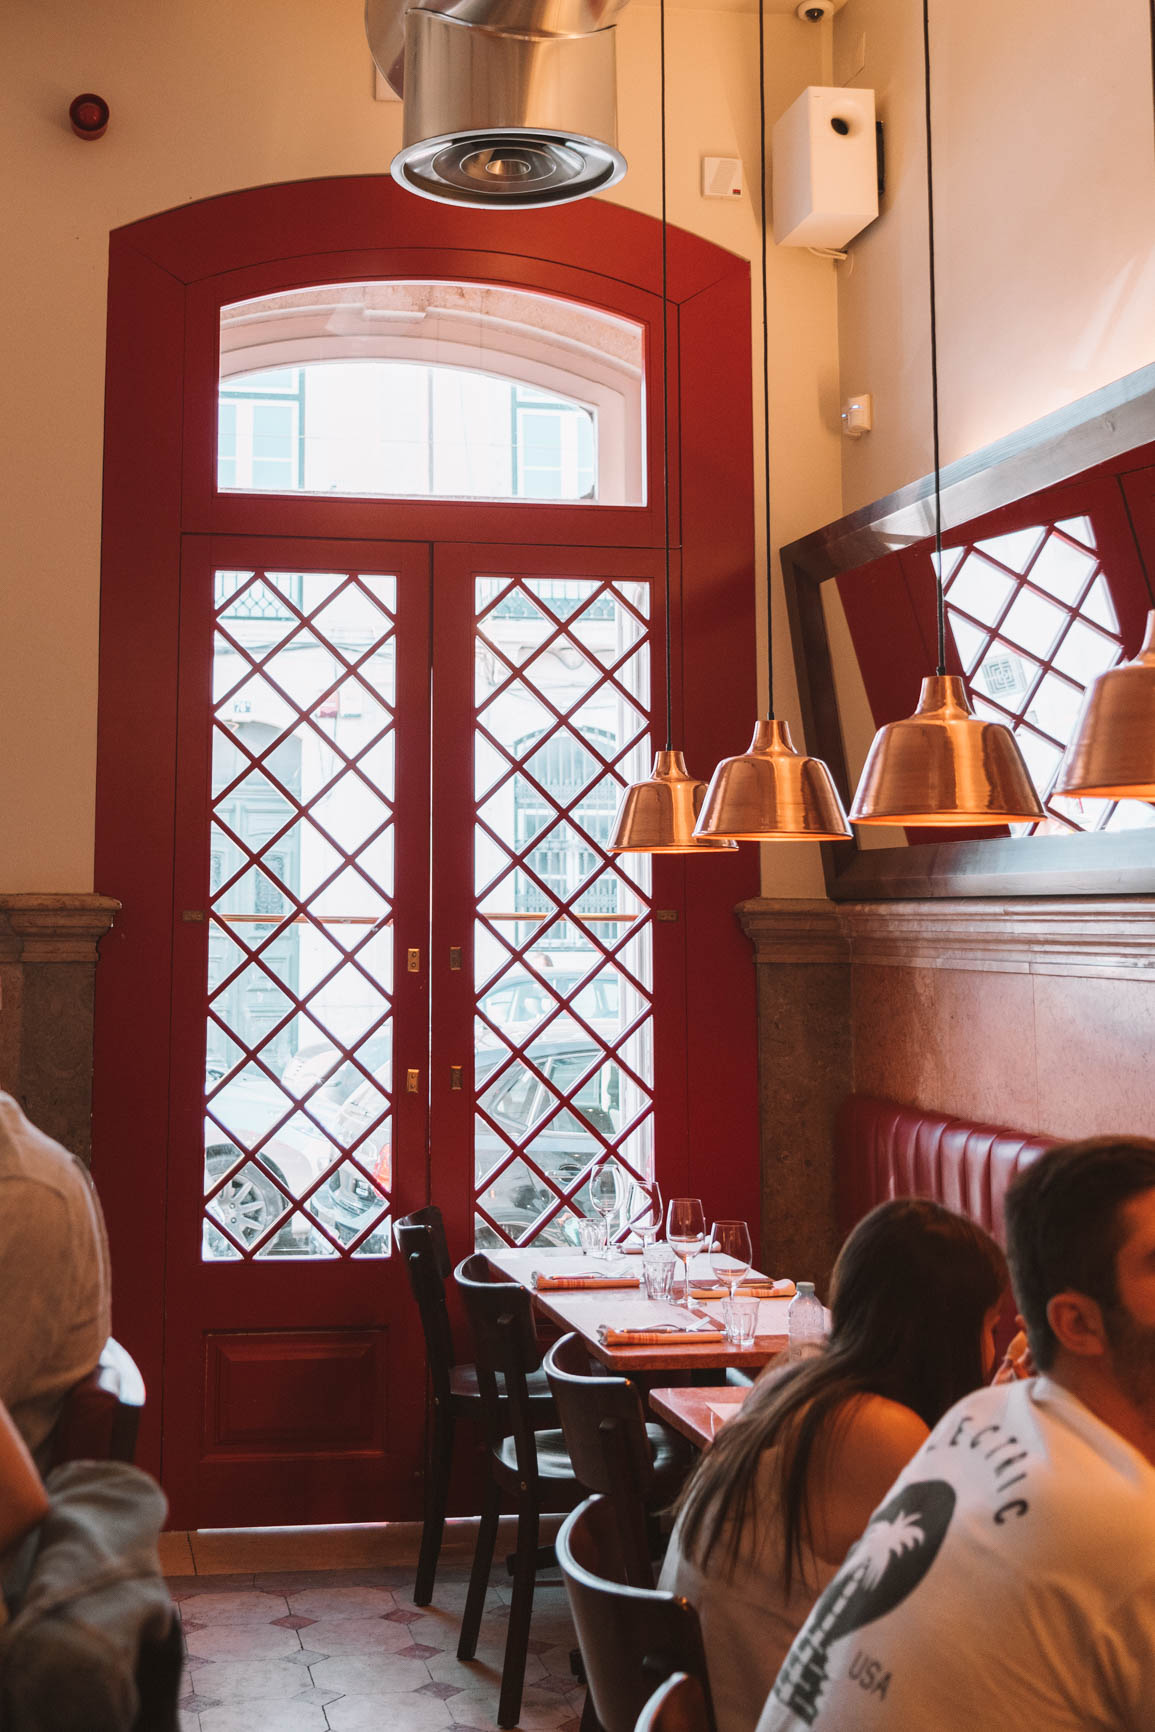 Where to eat in Lisbon - the best restaurants in Lisbon Portugal - 3 Days Itinerary and fun things to do in #Lisbon #Portugal